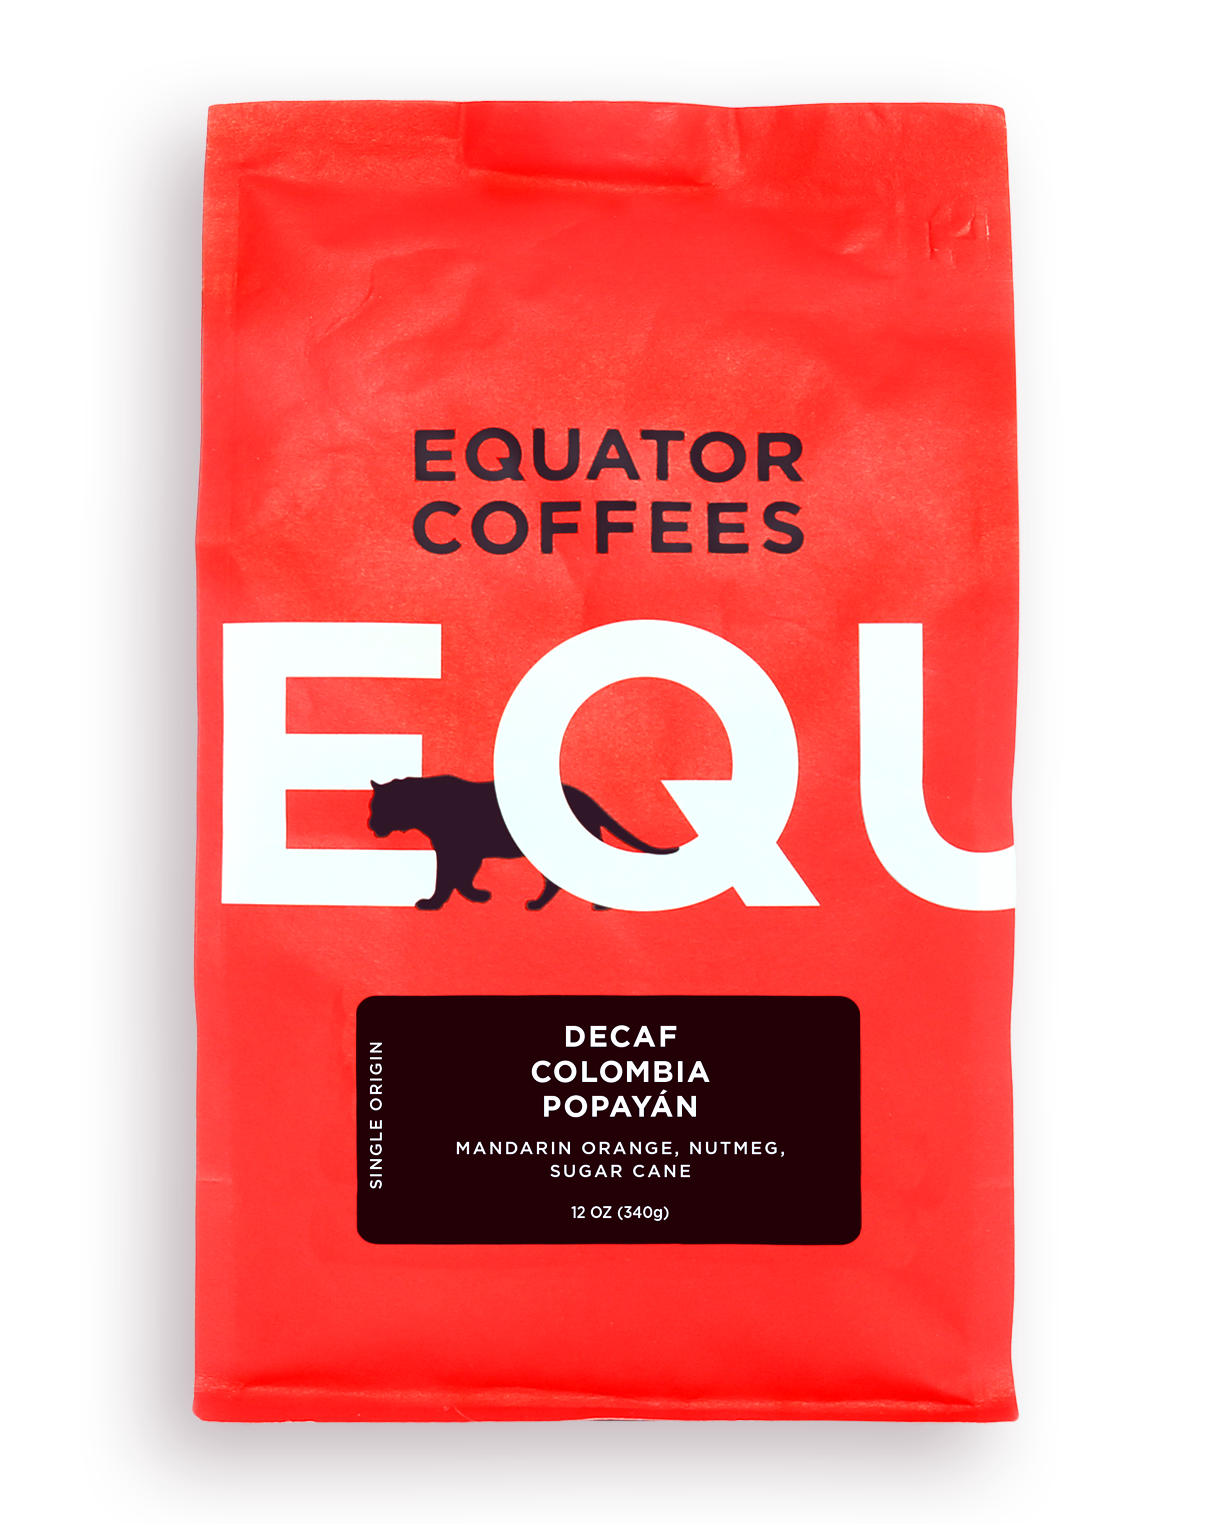 Decaf Colombia Popayán